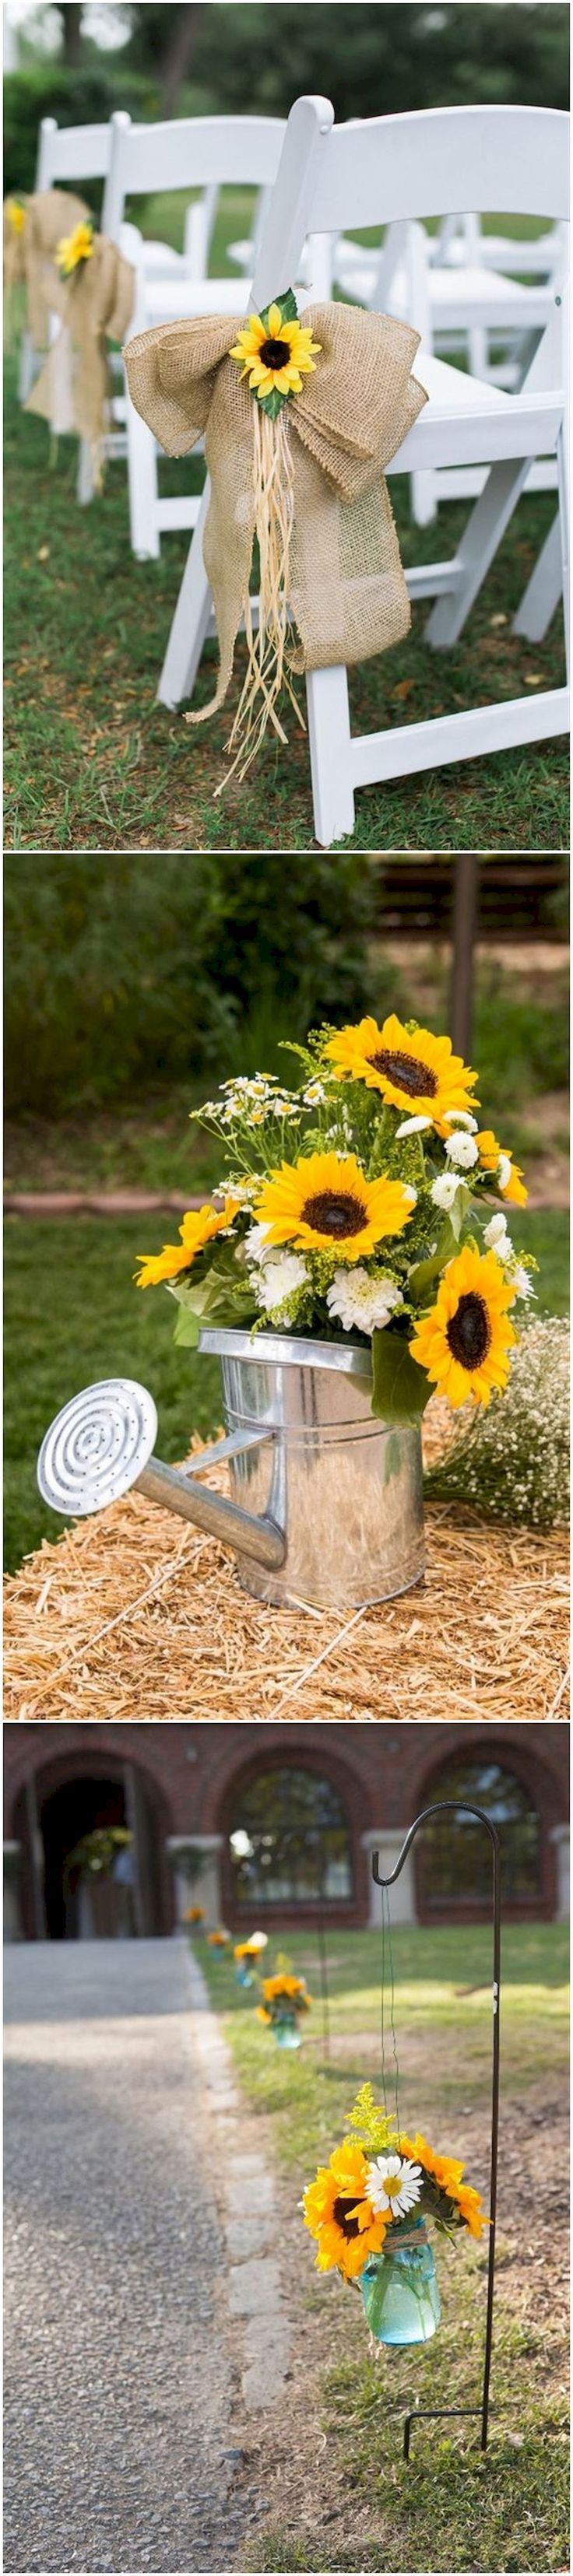 Cool 101+ Country Rustic Sunflower Wedding Theme Ideas https://bitecloth.com/2017/07/18/101-country-rustic-sunflower-wedding-theme-ideas/